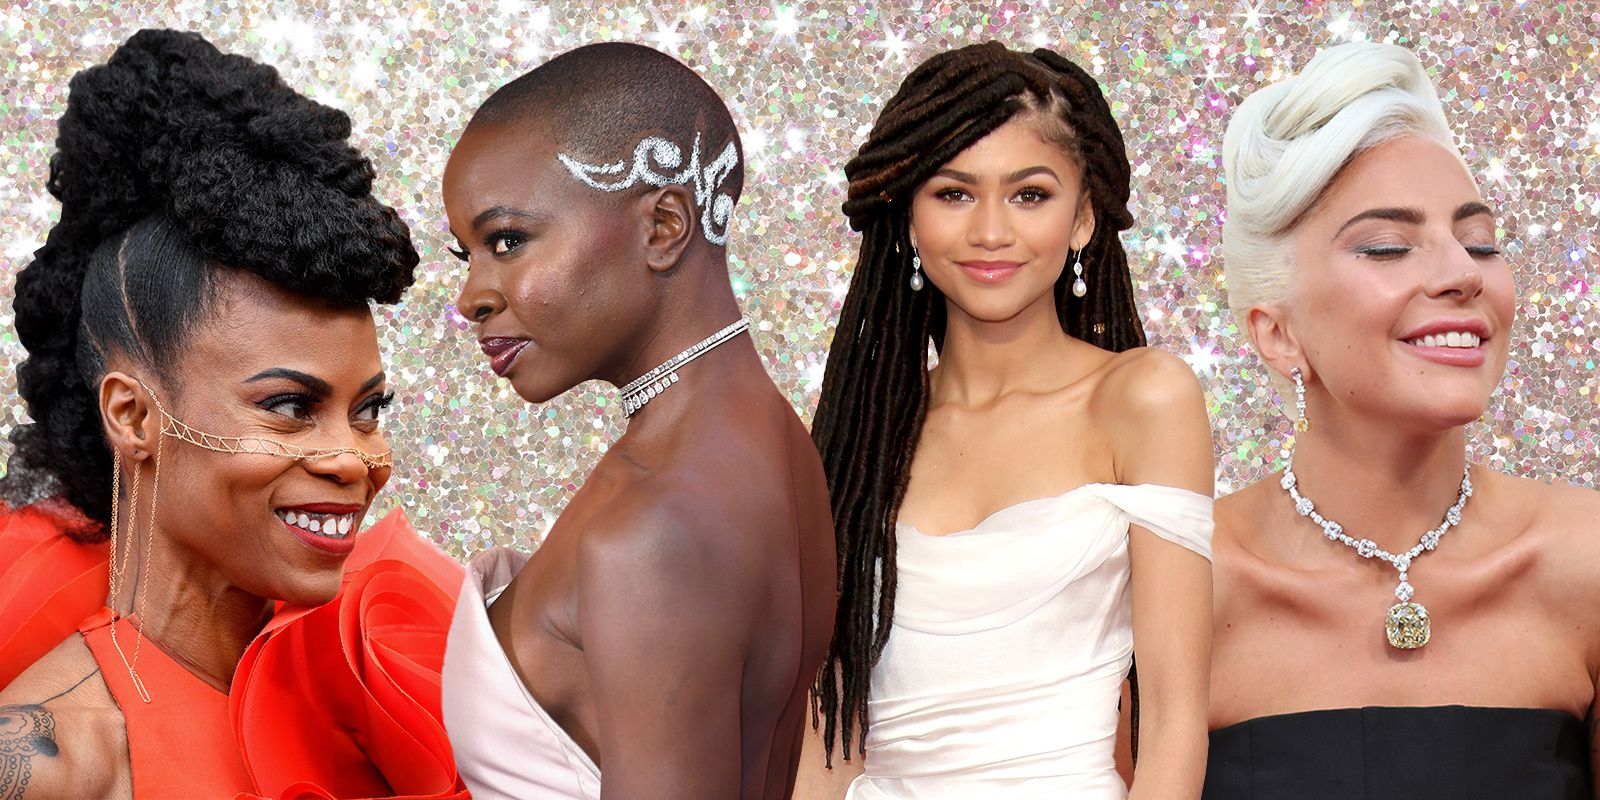 The 10 Most Memorable Oscars Beauty Looks Of The 2010s